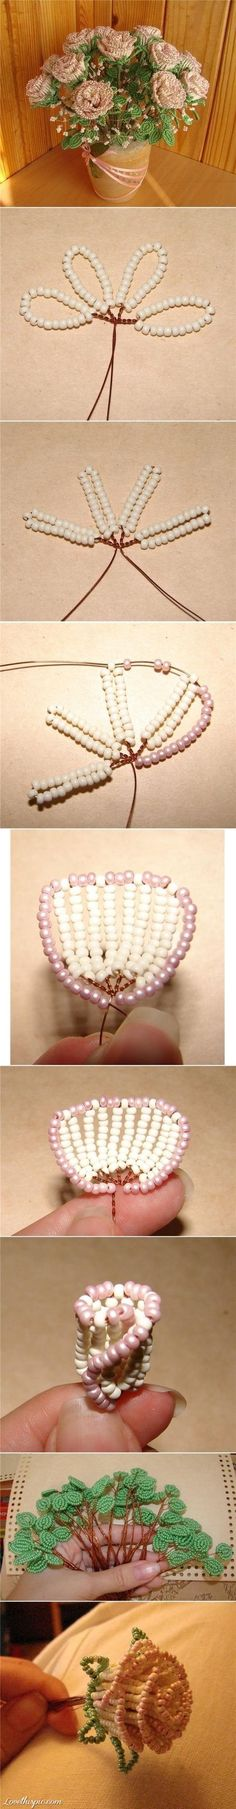 DIY Bead Roses Bouquet flowers diy crafts home made easy crafts craft idea crafts ideas diy ideas diy crafts diy idea do it yourself diy projects diy roses